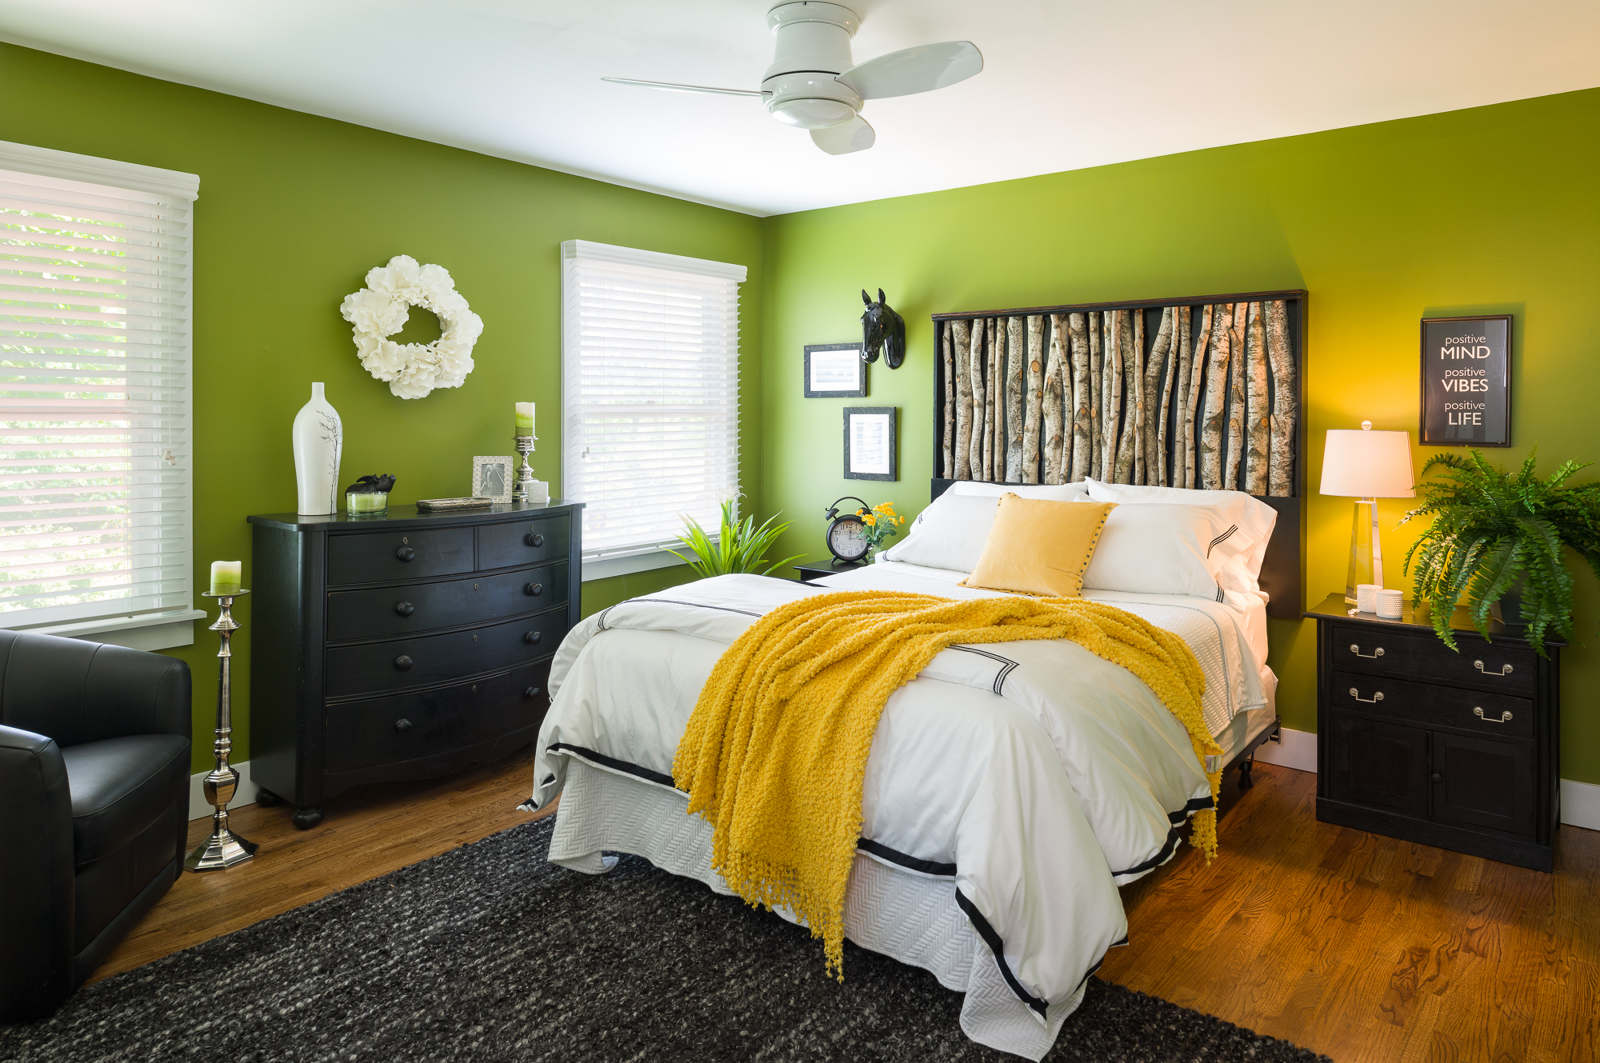 After  - Oh yes! This is the same bedroom. New paint and trim, a different fan, a custom bed, bedding, furnishings and accessories welcome guests to this country home.